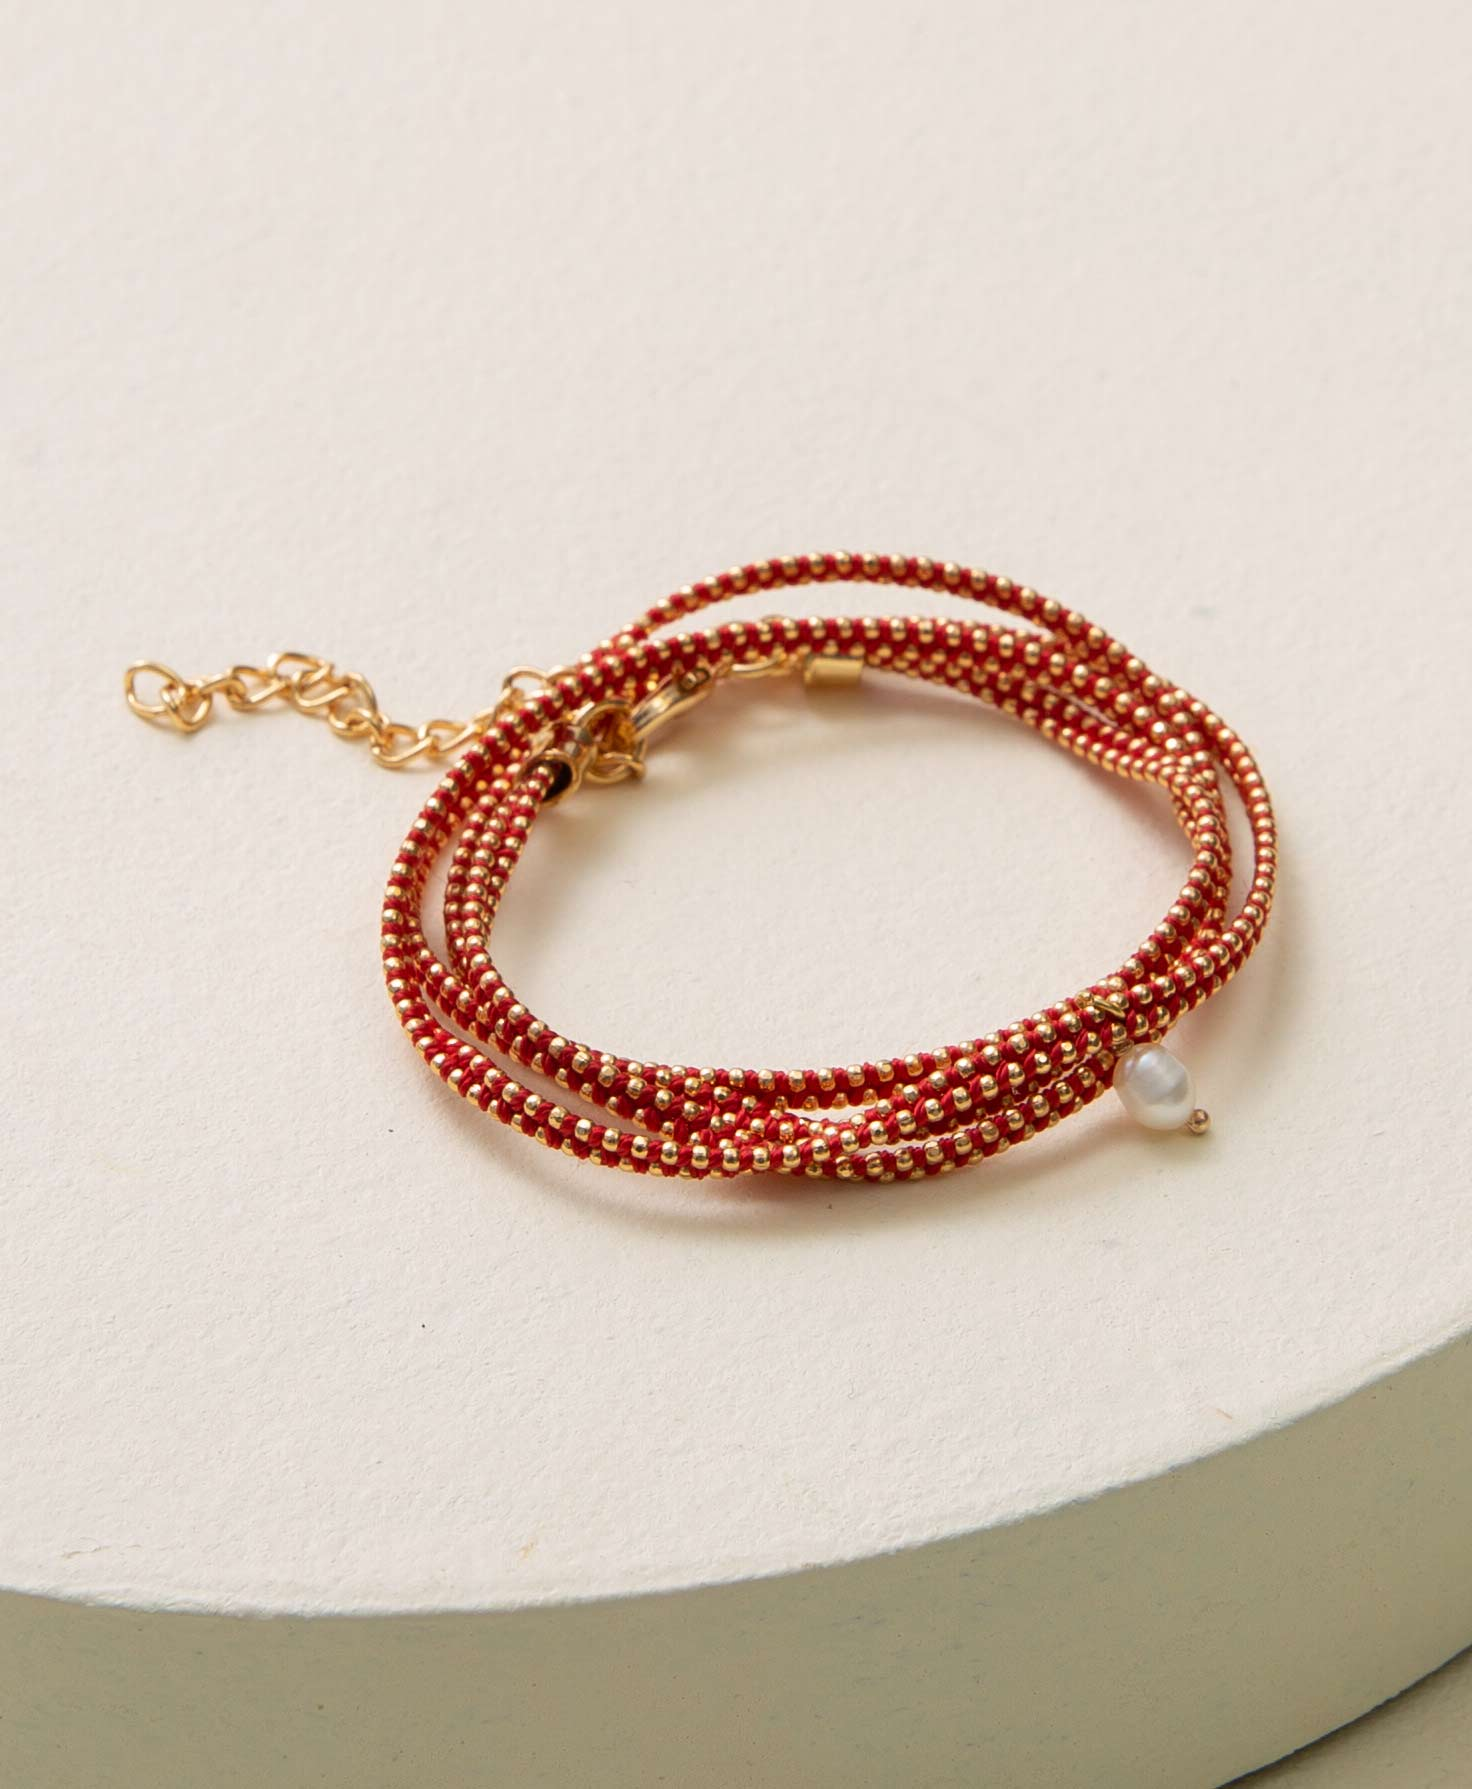 The Peacemaker Wrap Bracelet lays coiled on a white platform. It is composed of two layers of tiny brass beads wrapped in bright red thread. A pearl bead dangles from the center of the bracelet. A lobster-claw closure connects to a brass chain to secure the bracelet.